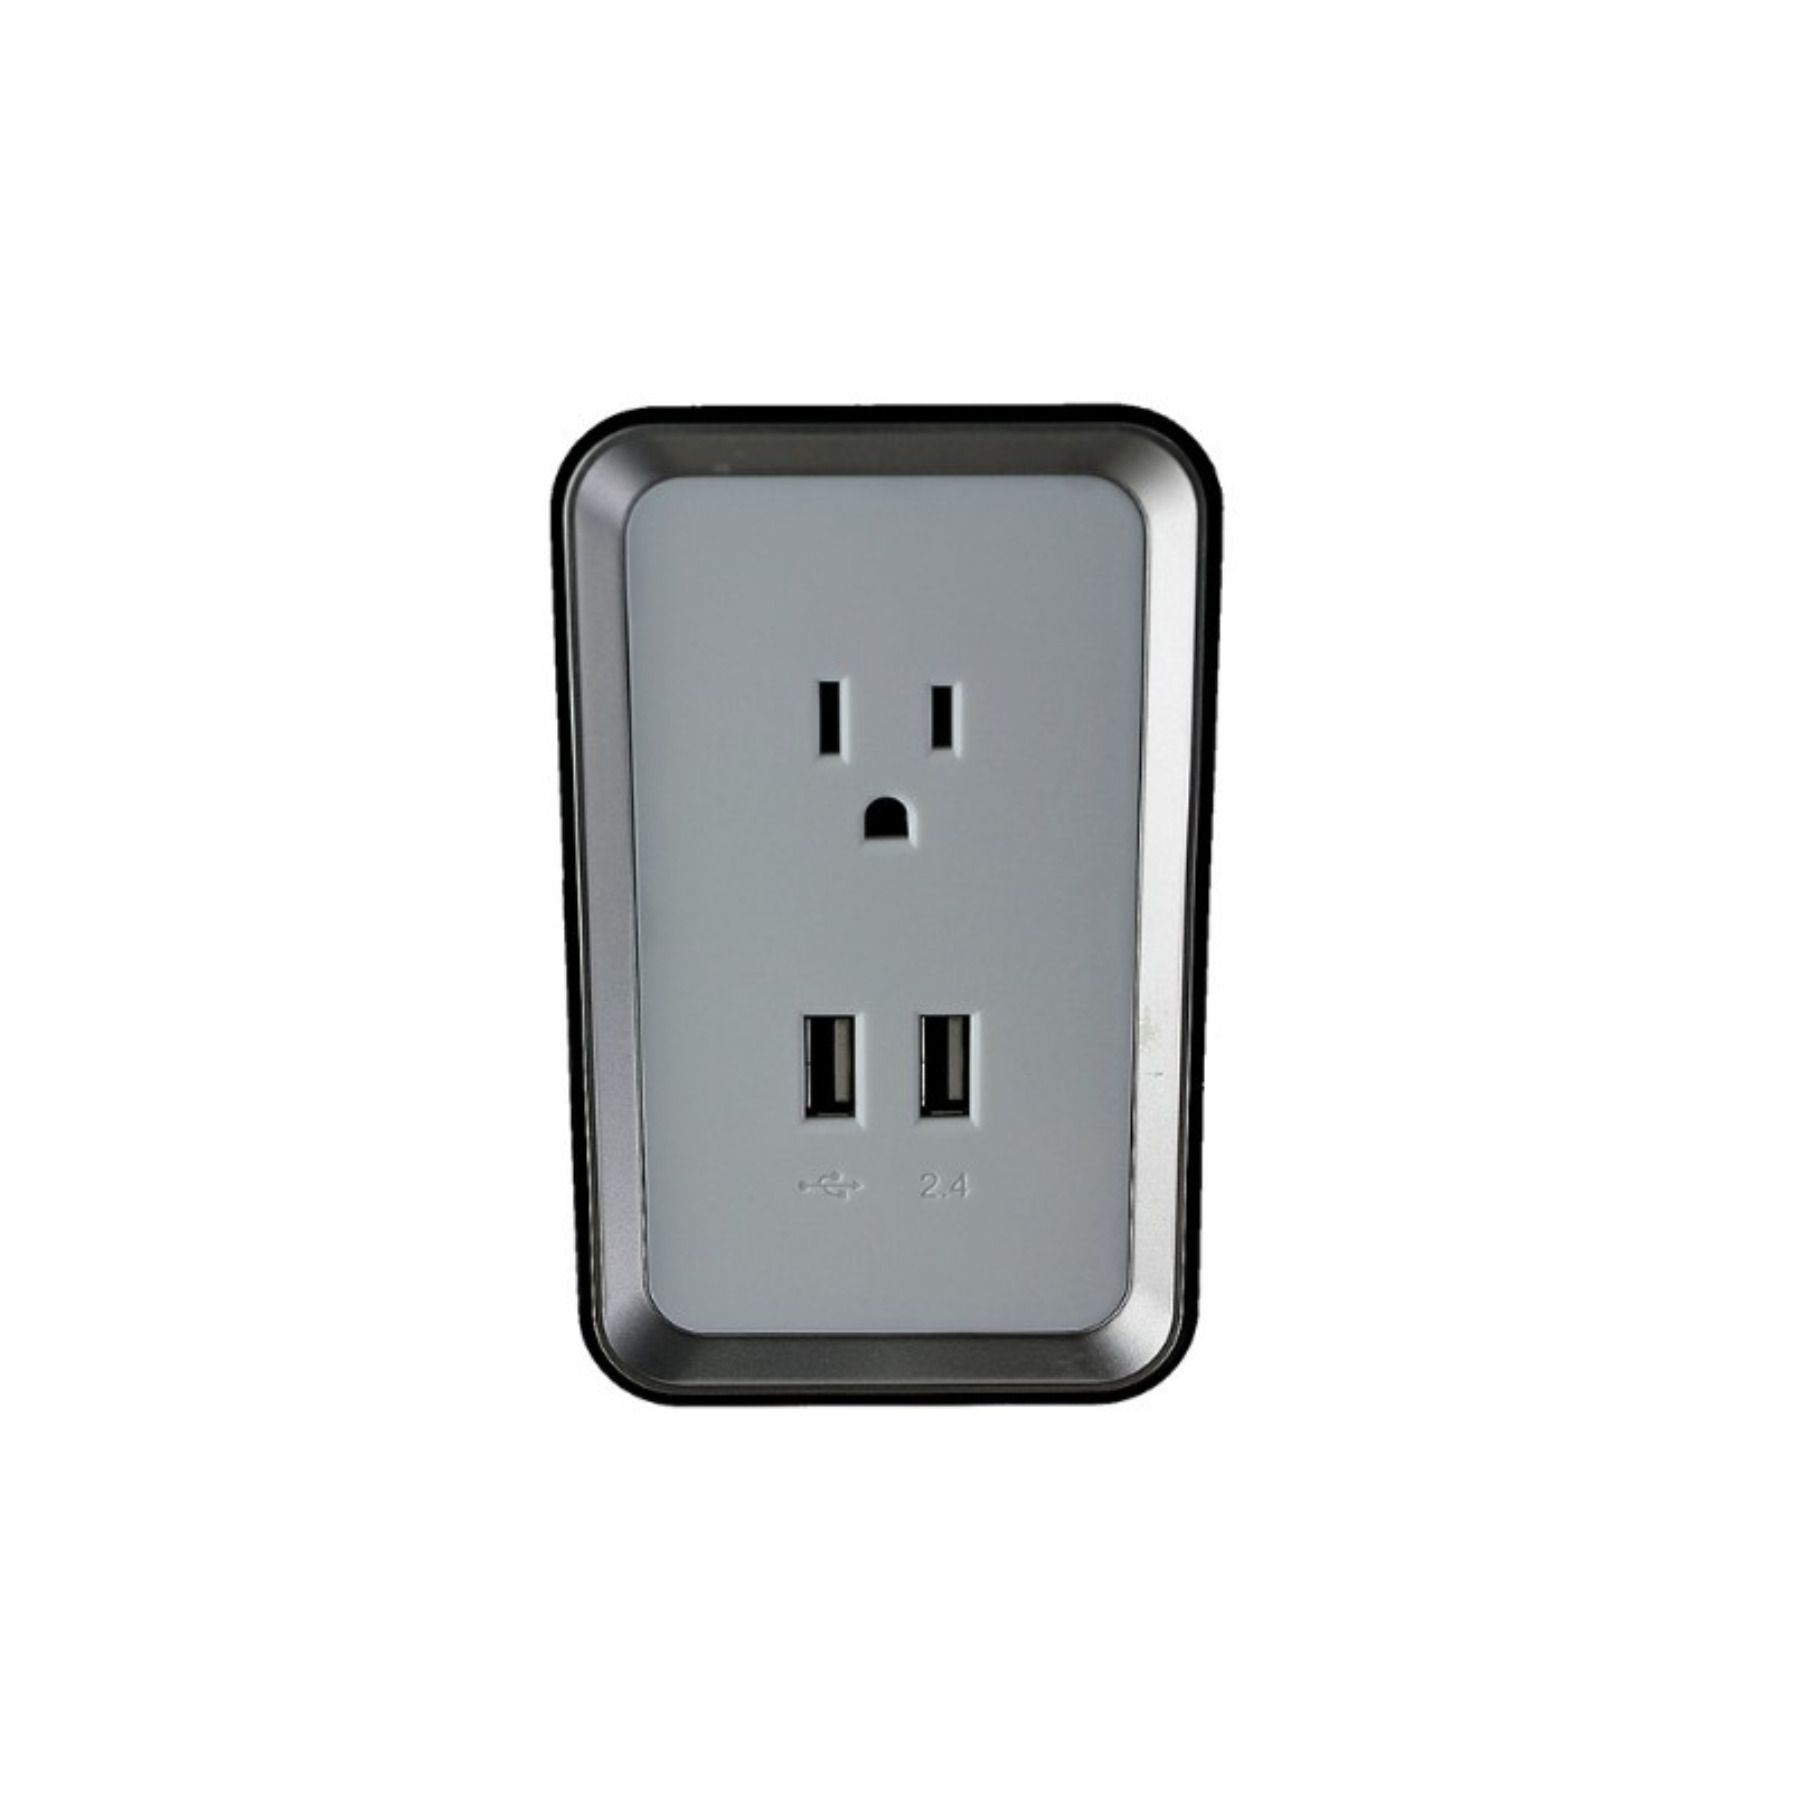 Sharper Image Usb Wall Plate Charger W 2 Usb Ports Item Is